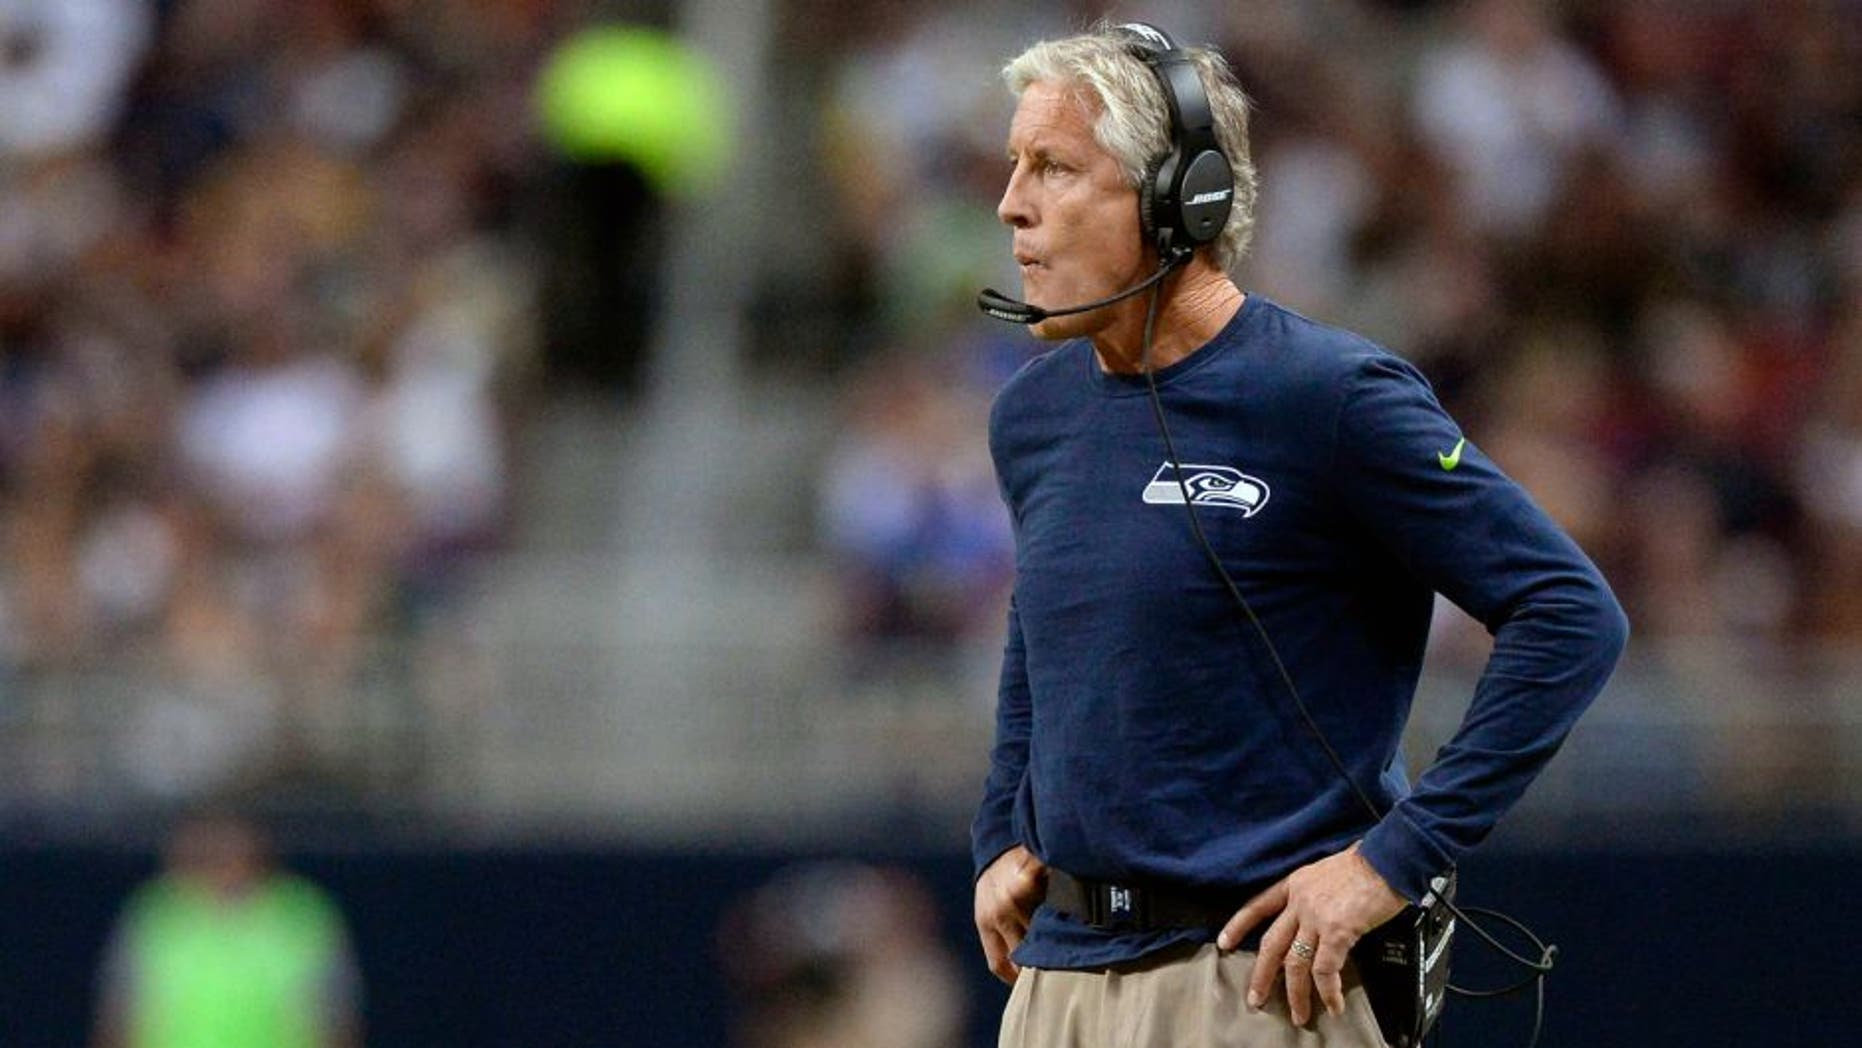 Sep 13, 2015; St. Louis, MO, USA; Seattle Seahawks head coach Pete Carroll looks on as his team plays the St. Louis Rams during the first half at the Edward Jones Dome. Mandatory Credit: Jeff Curry-USA TODAY Sports